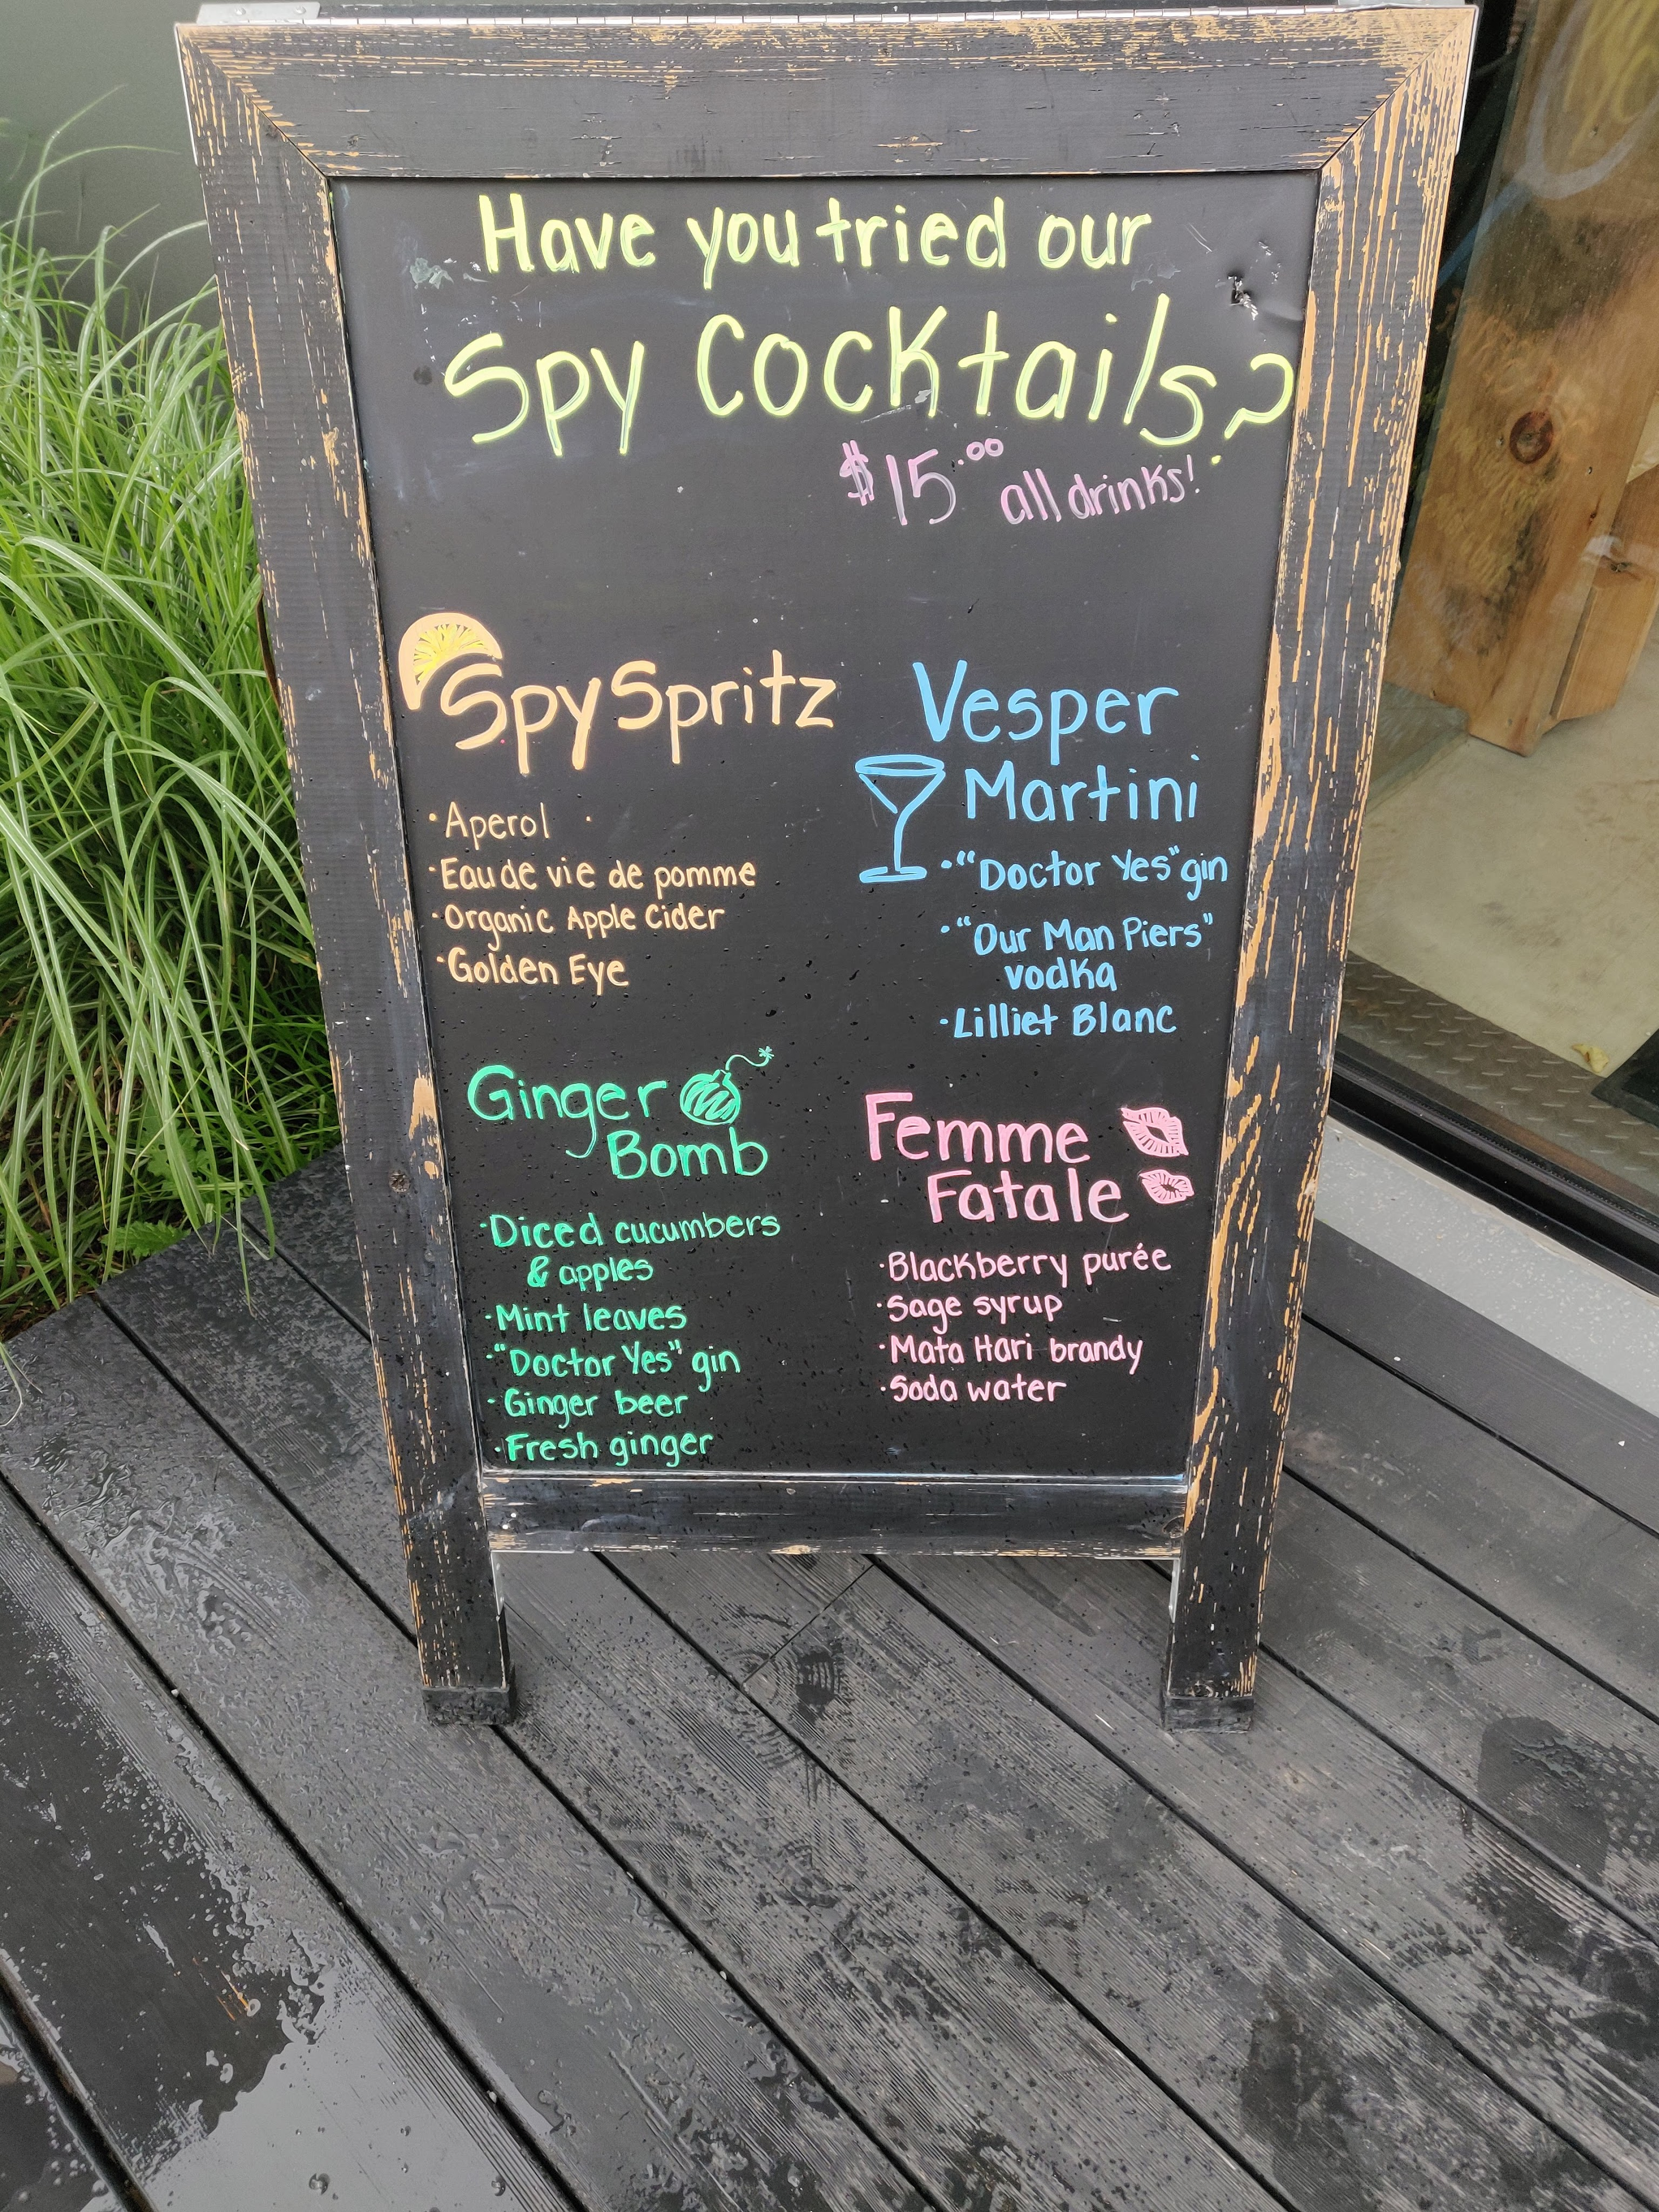 An aged black sandwich board advertising Spy Cocktails: Spy Spritz contains aperol, eau de vie de pomme, organic apple cider, and Golden Eye; Vesper Martini contains Dr. Yes gin, Our Man Piers vodka and Lillet Blanc; Ginger Bomb contains diced cucumbers and apples, mint leaves, Dr. Yes gin, ginger beer and fresh ginger; Femme Fatale contains blackberry puree, sage syrup, mata hari brandy, and soda water. All drinks are $15.